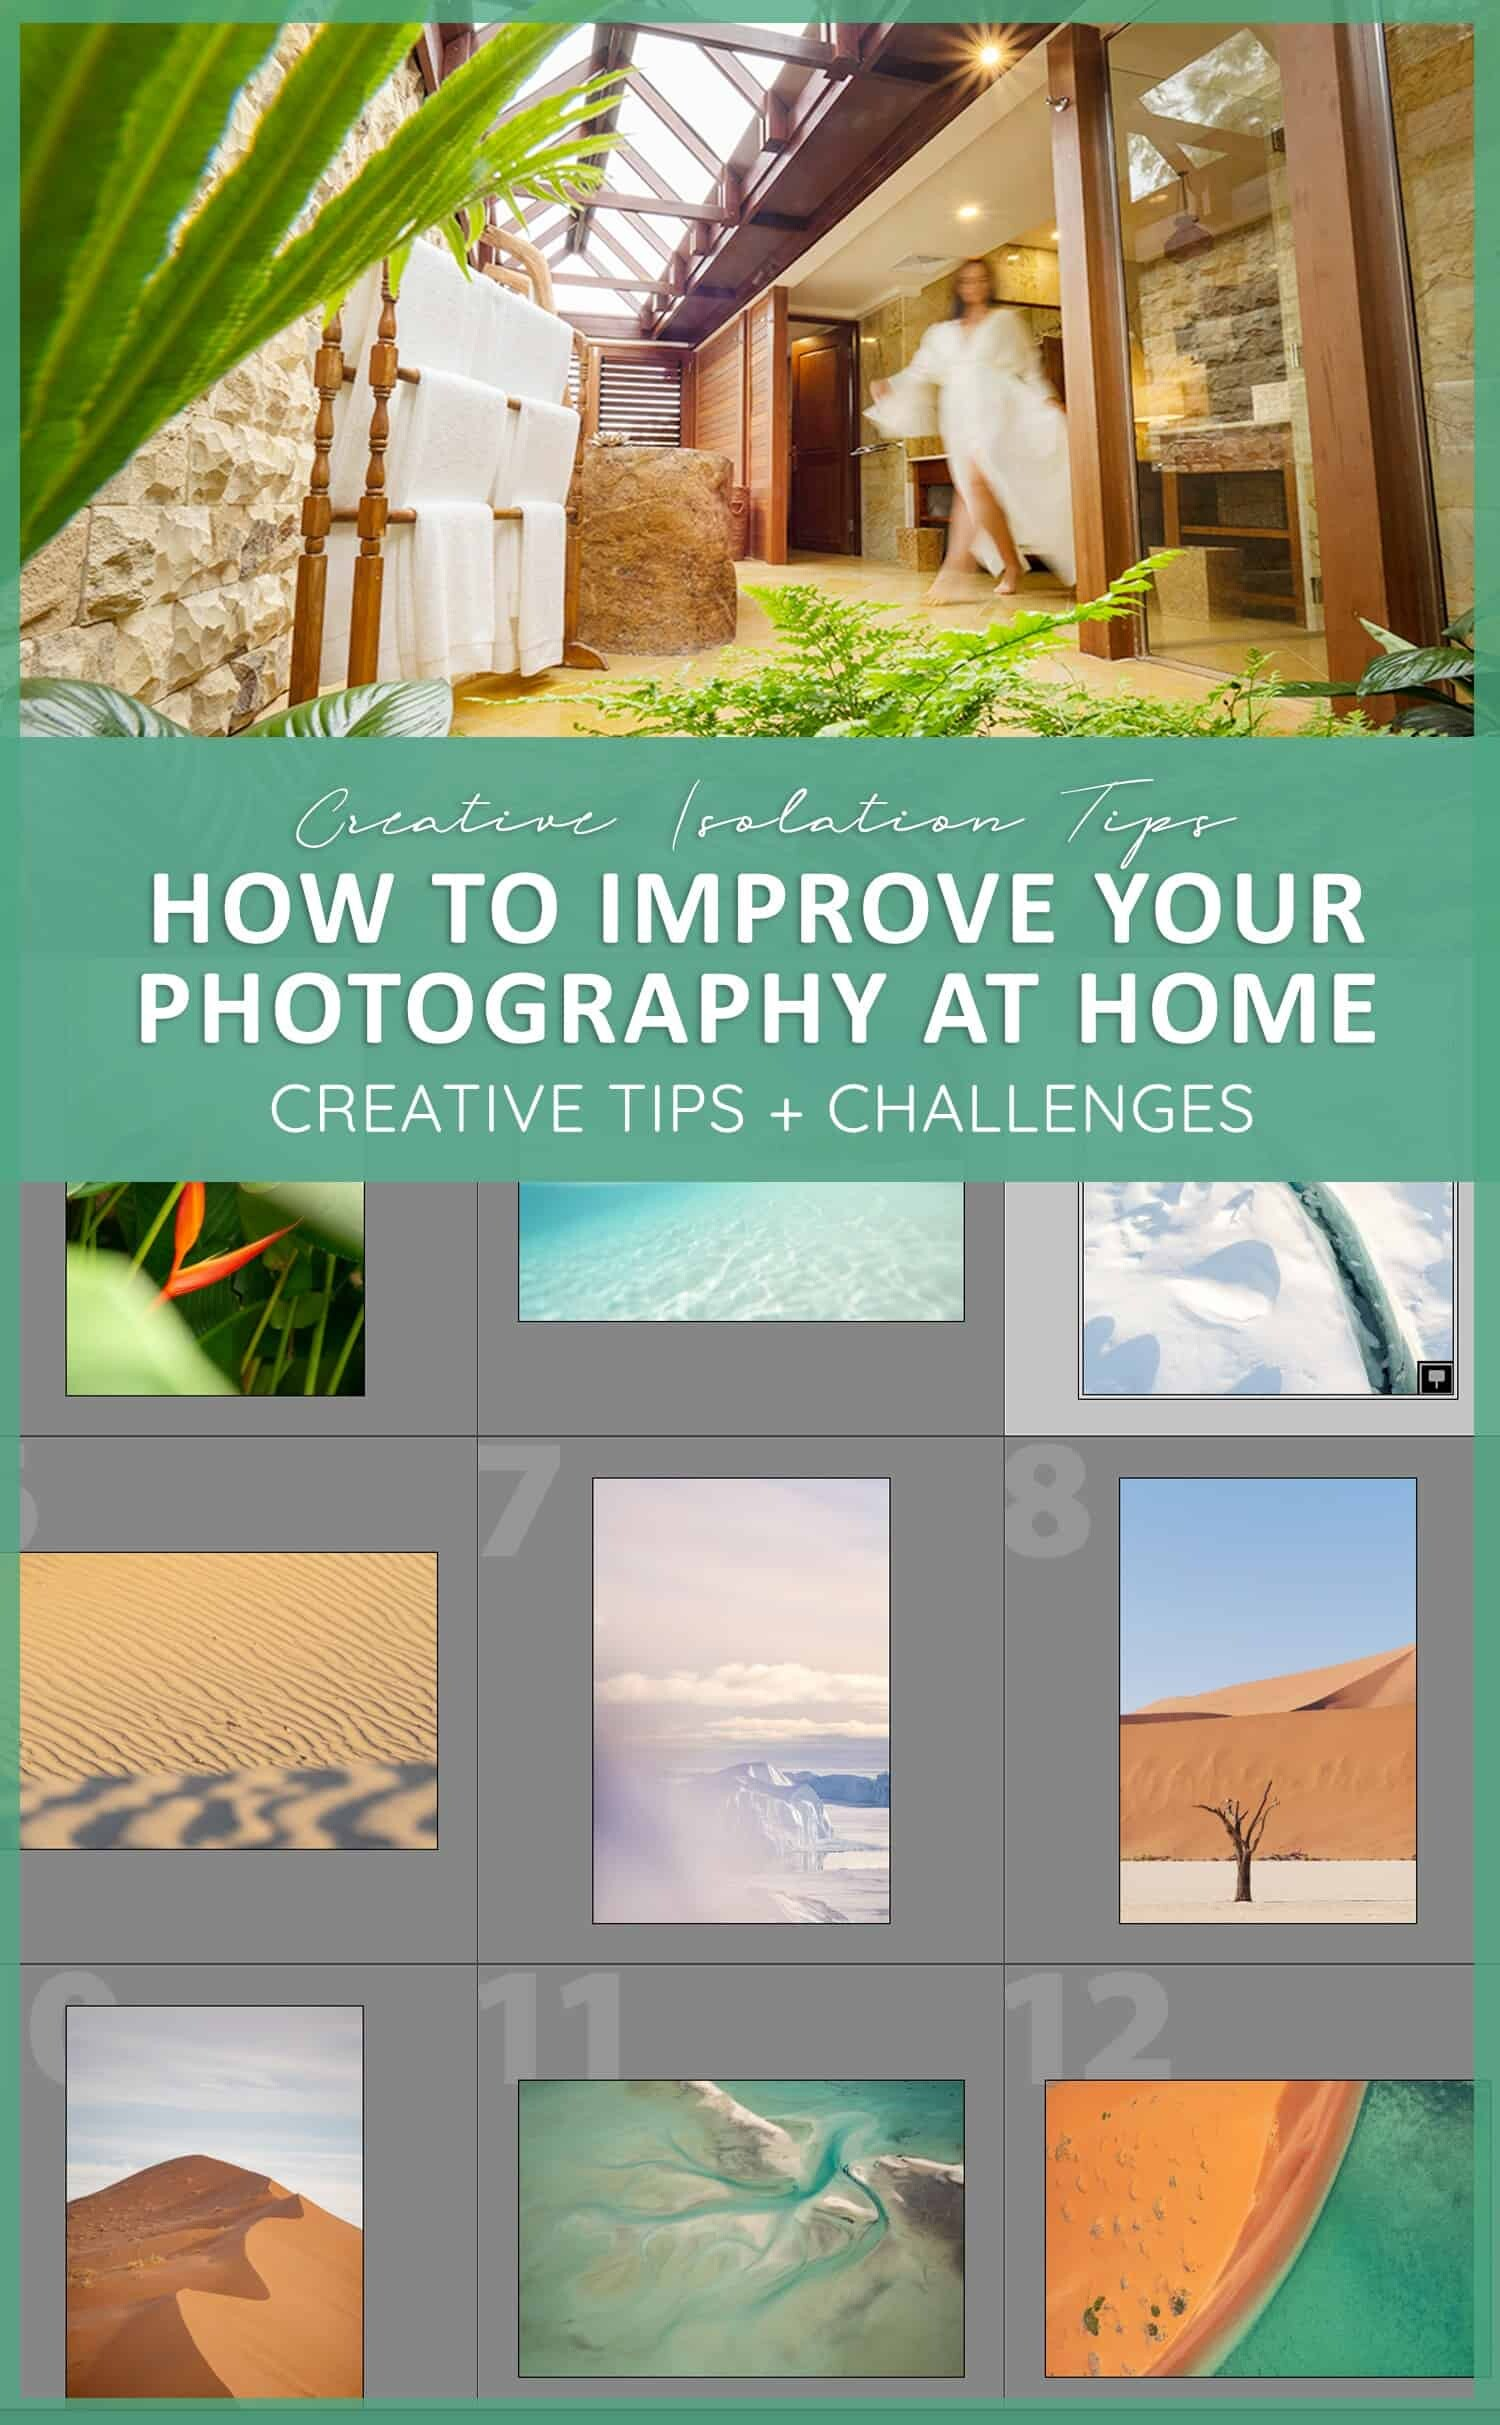 Improve Your Photography at Home